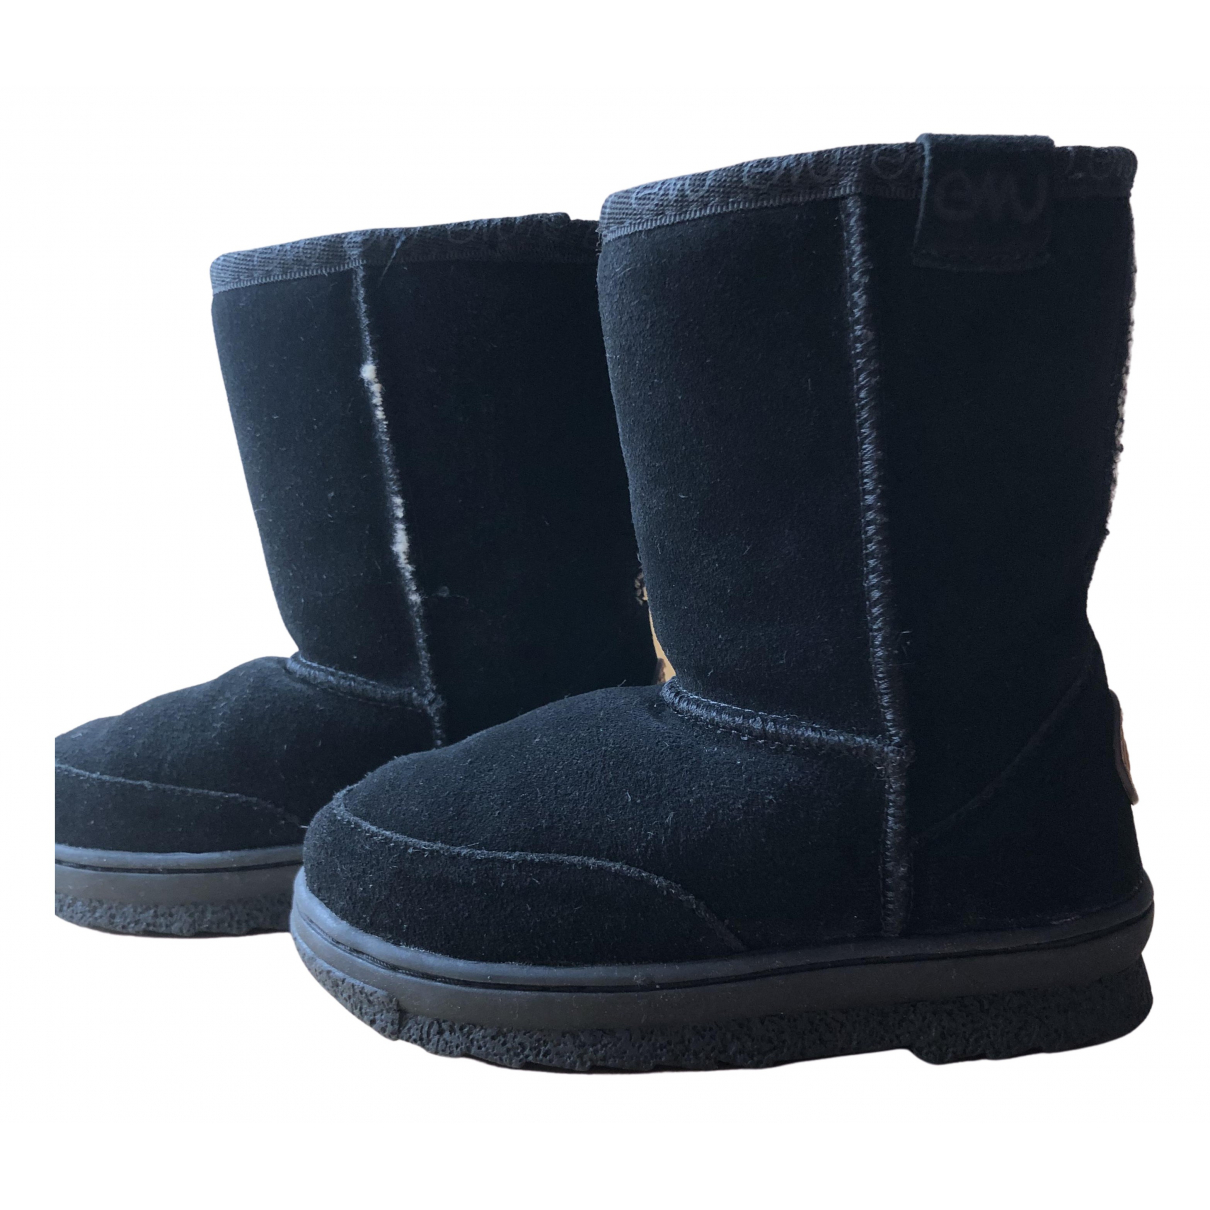 Emu Australia N Black Suede Boots for Kids 7.5 UK